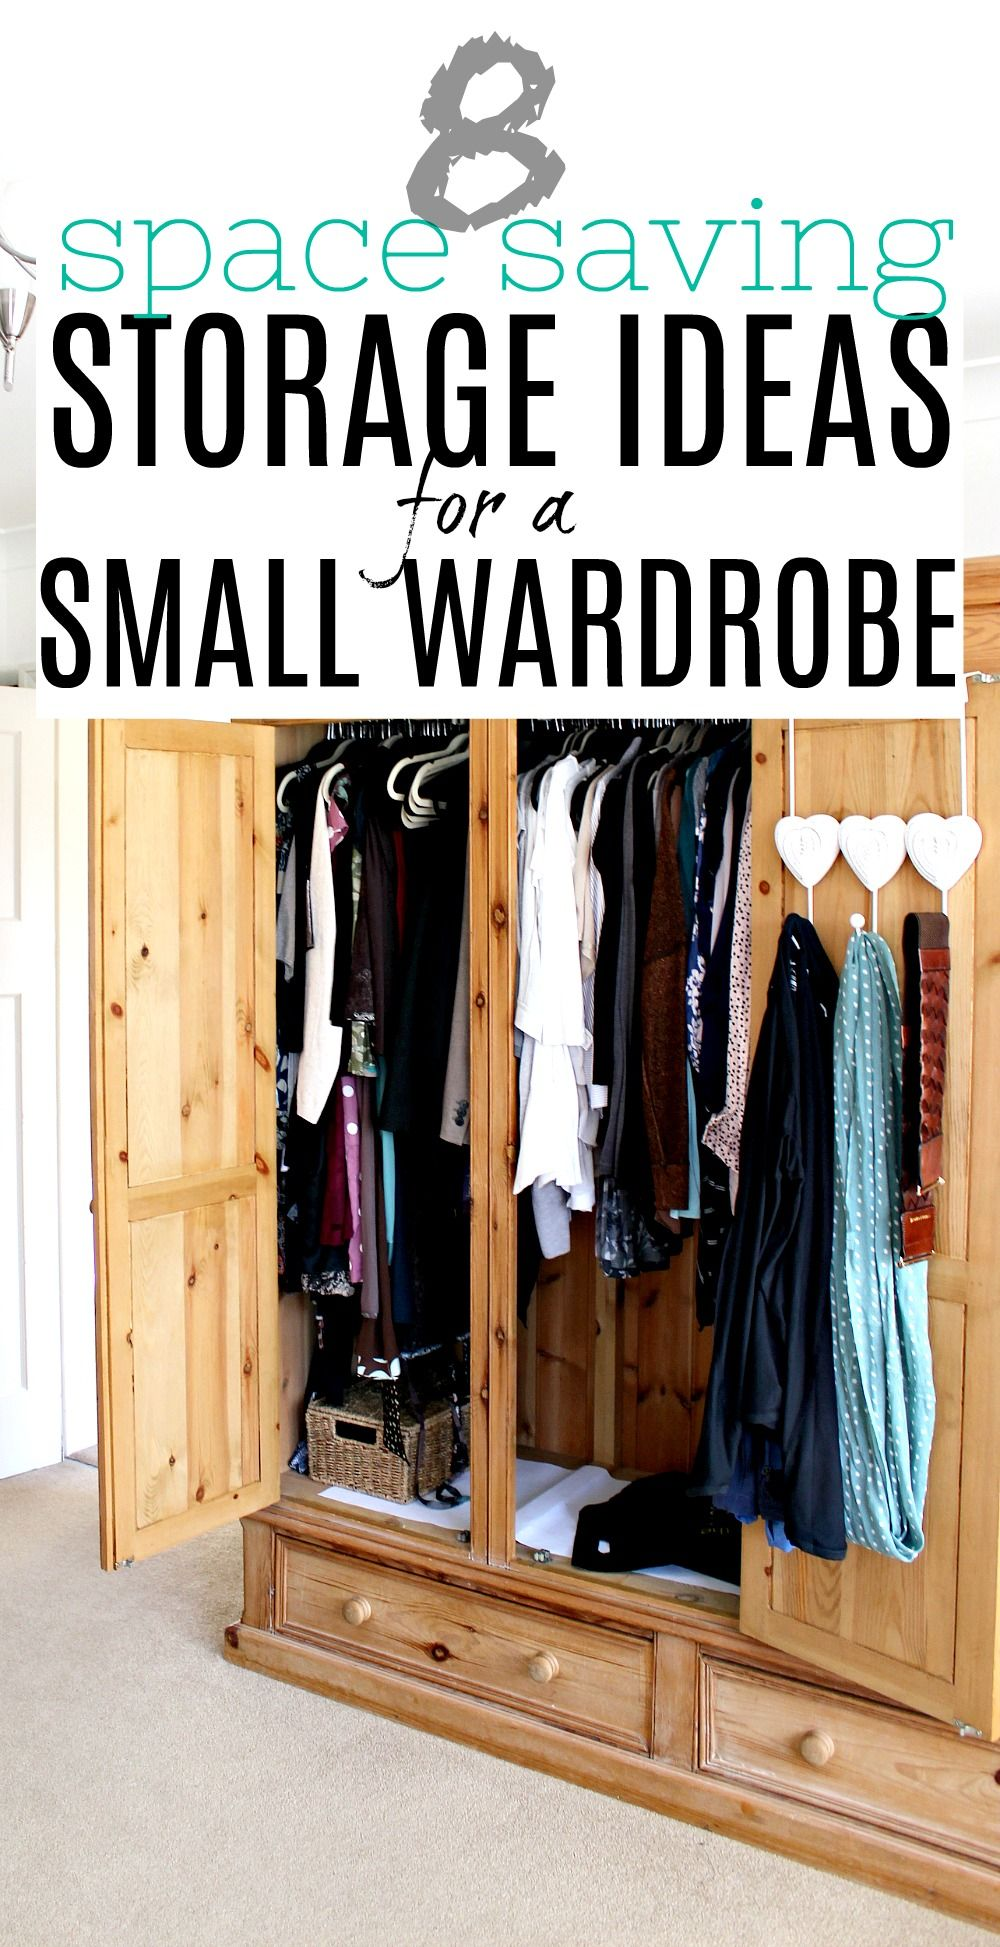 8 Amazing Space Saving Storage Ideas For A Small Wardrobe Small